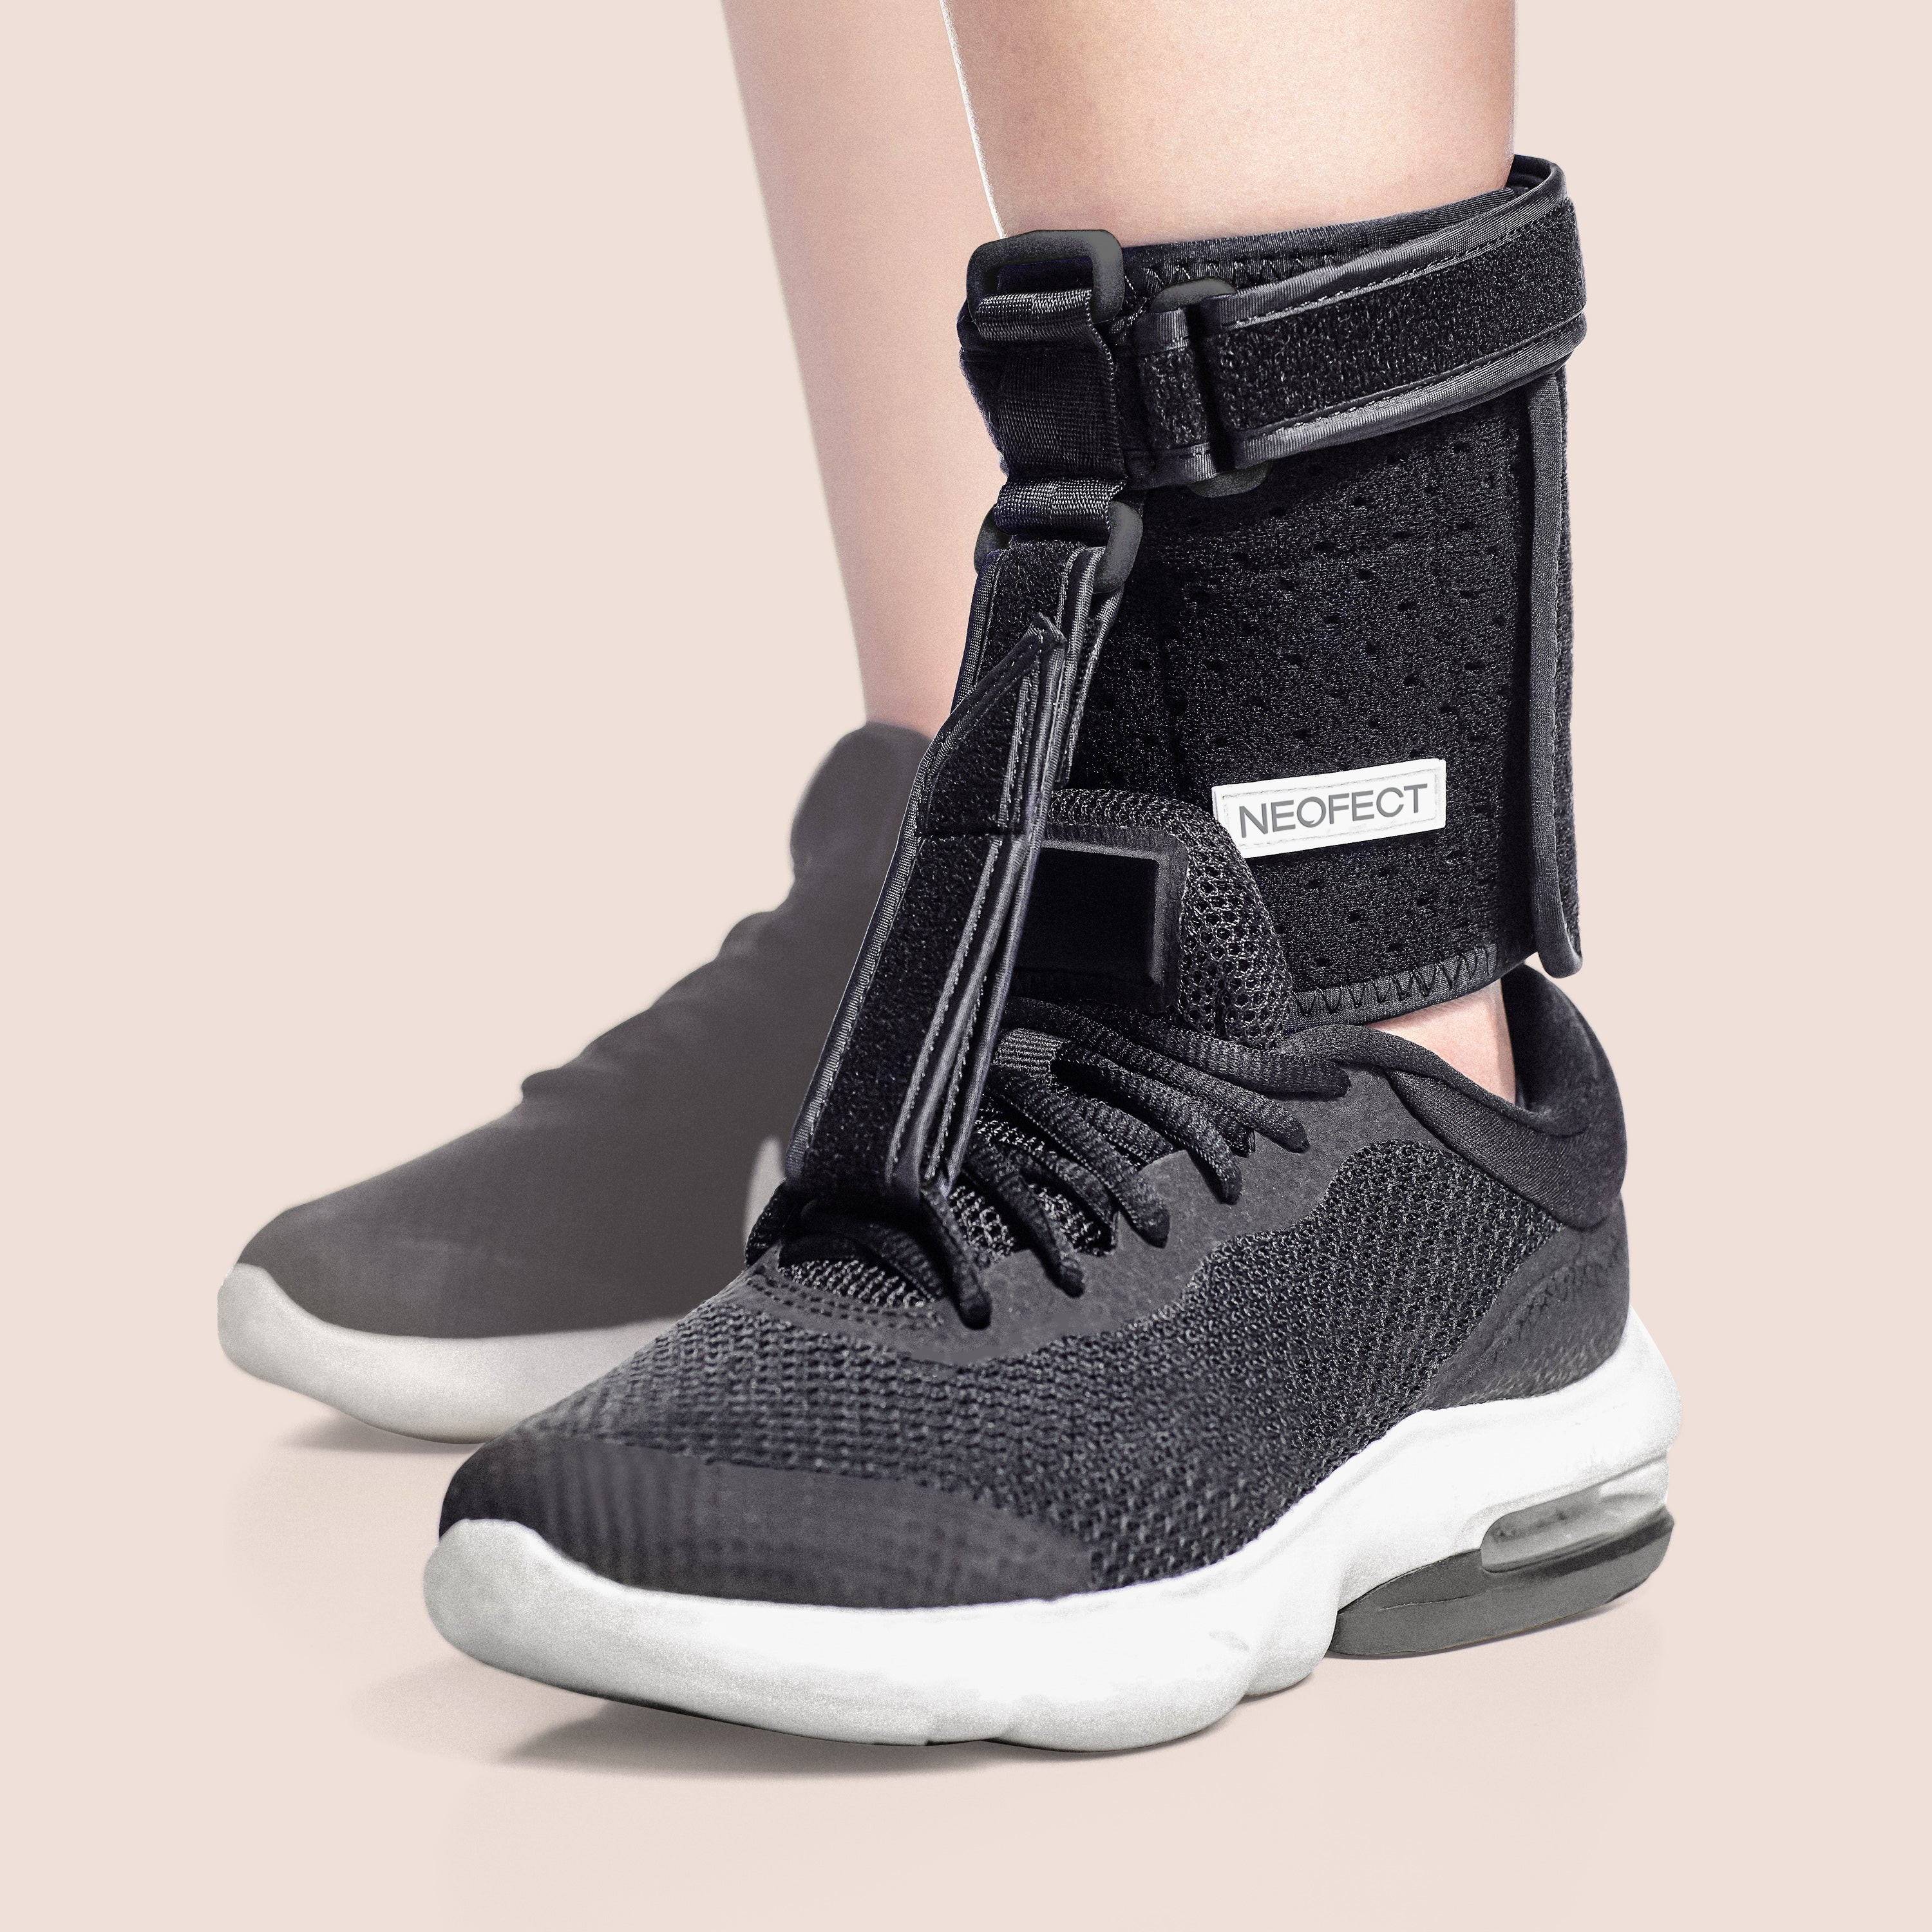 Neofect Foot-Up Brace